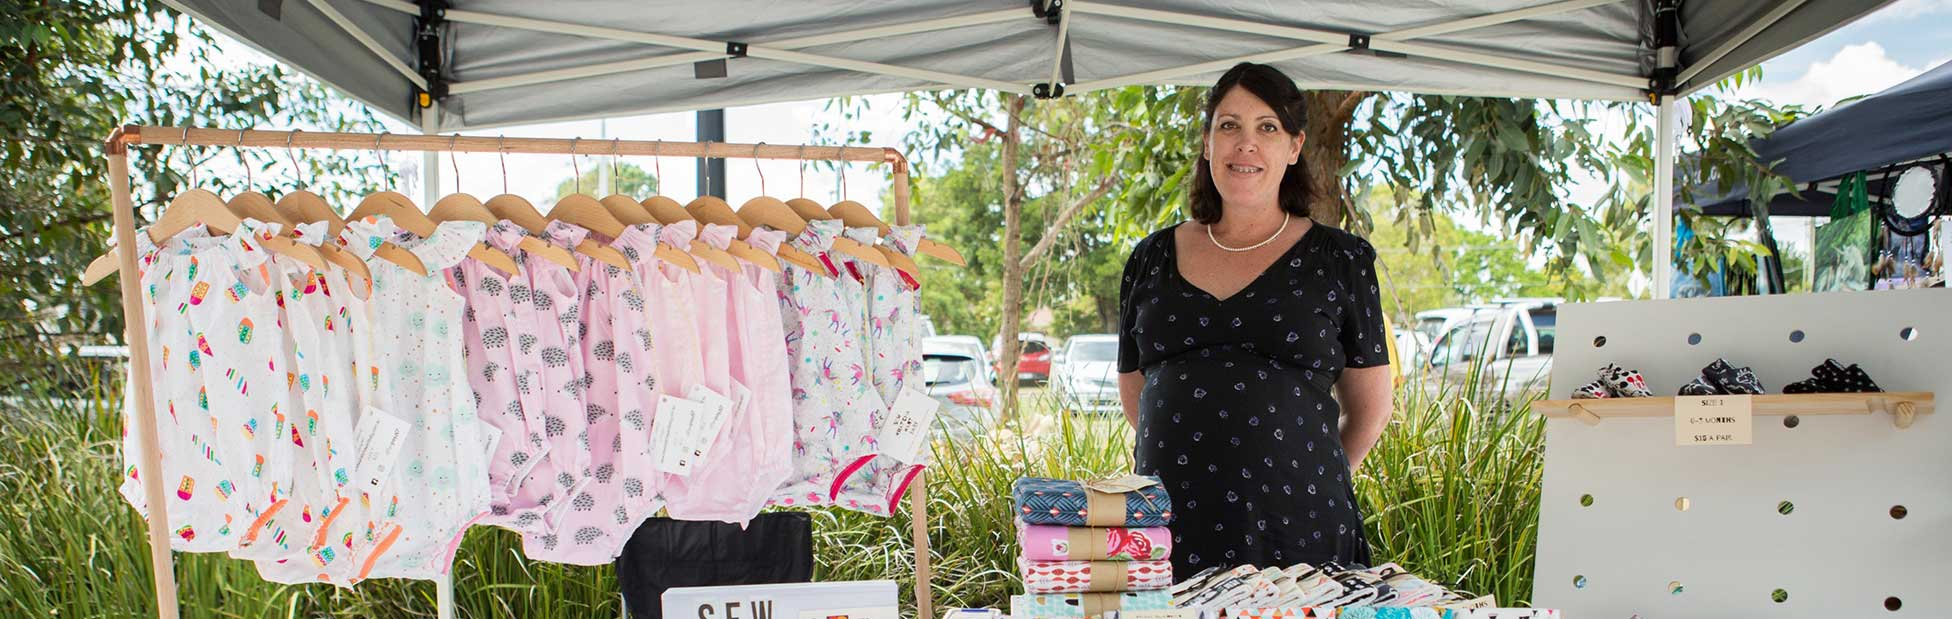 Woman stallholder selling baby clothing